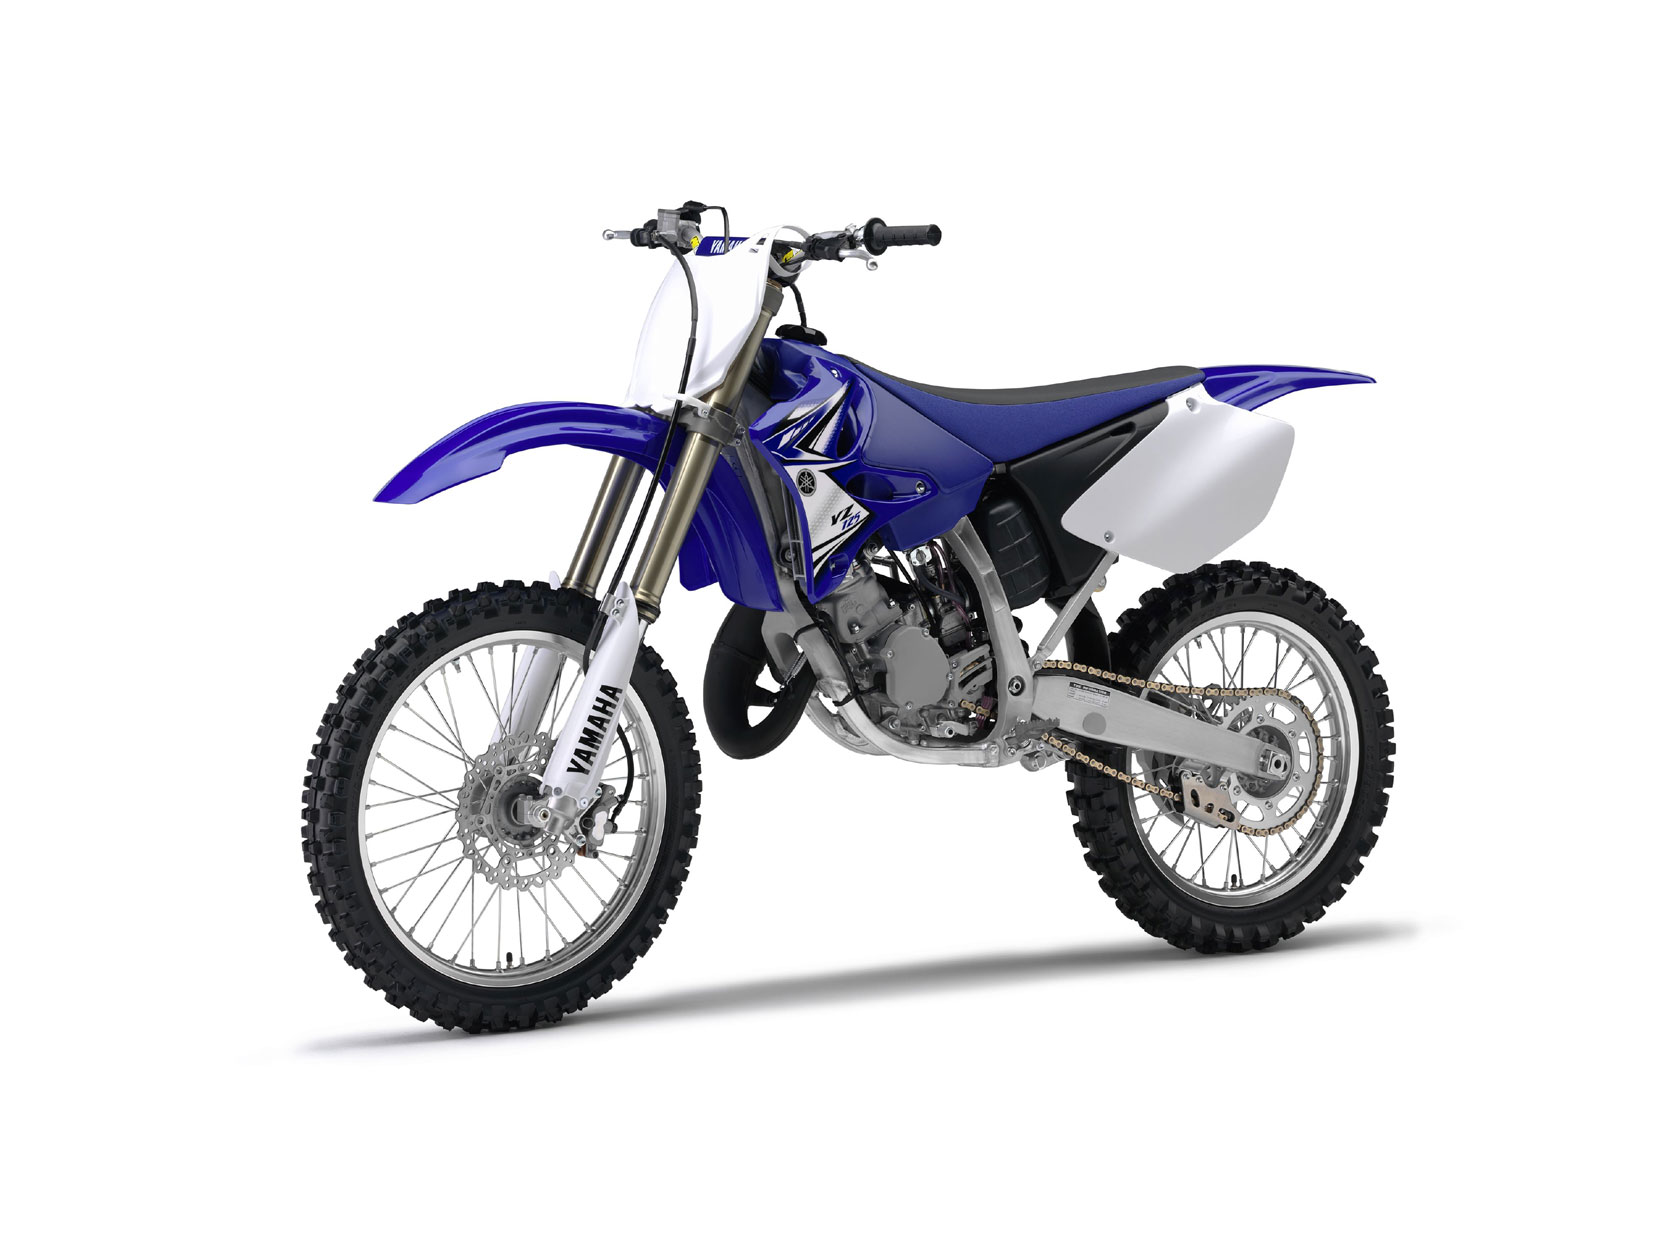 yamaha yz125 specs 2010 2011 autoevolution. Black Bedroom Furniture Sets. Home Design Ideas